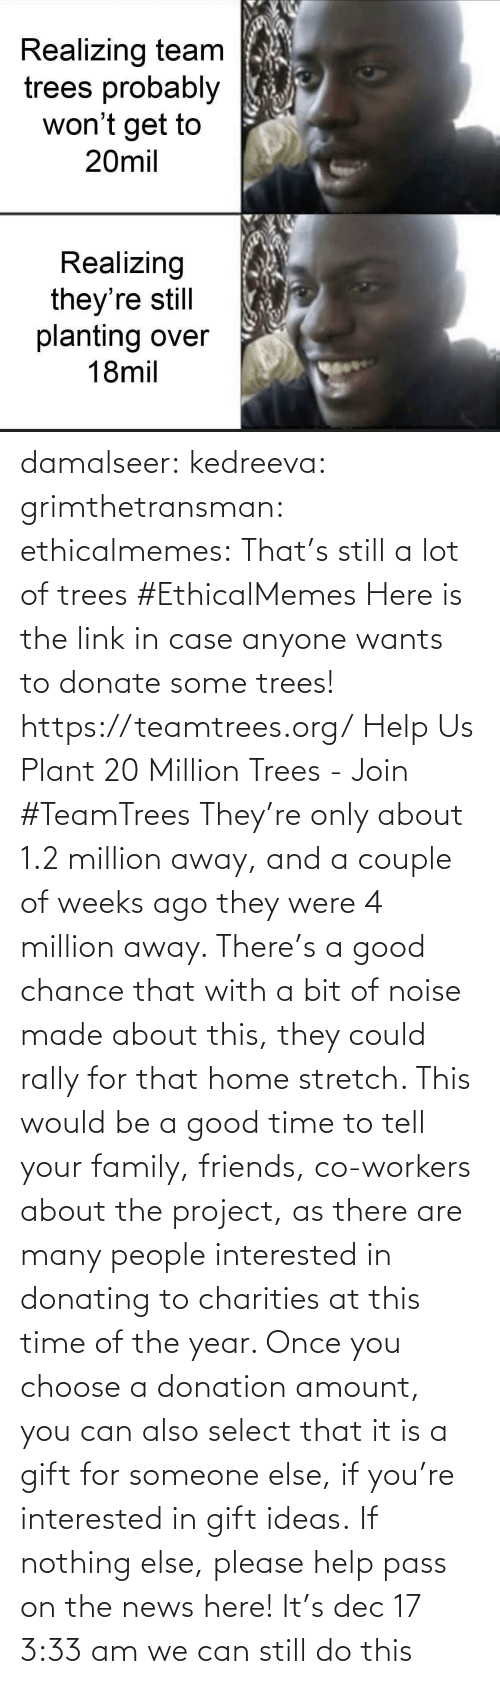 url: Realizing team  trees probably  won't get to  20mil  Realizing  they're still  planting over  18mil damalseer:  kedreeva: grimthetransman:  ethicalmemes:  That's still a lot of trees #EthicalMemes   Here is the link in case anyone wants to donate some trees!  https://teamtrees.org/ Help Us Plant 20 Million Trees - Join #TeamTrees  They're only about 1.2 million away, and a couple of weeks ago they were 4 million away. There's a good chance that with a bit of noise made about this, they could rally for that home stretch. This would be a good time to tell your family, friends, co-workers about the project, as there are many people interested in donating to charities at this time of the year. Once you choose a donation amount, you can also select that it is a gift for someone else, if you're interested in gift ideas. If nothing else, please help pass on the news here!    It's dec 17 3:33 am we can still do this